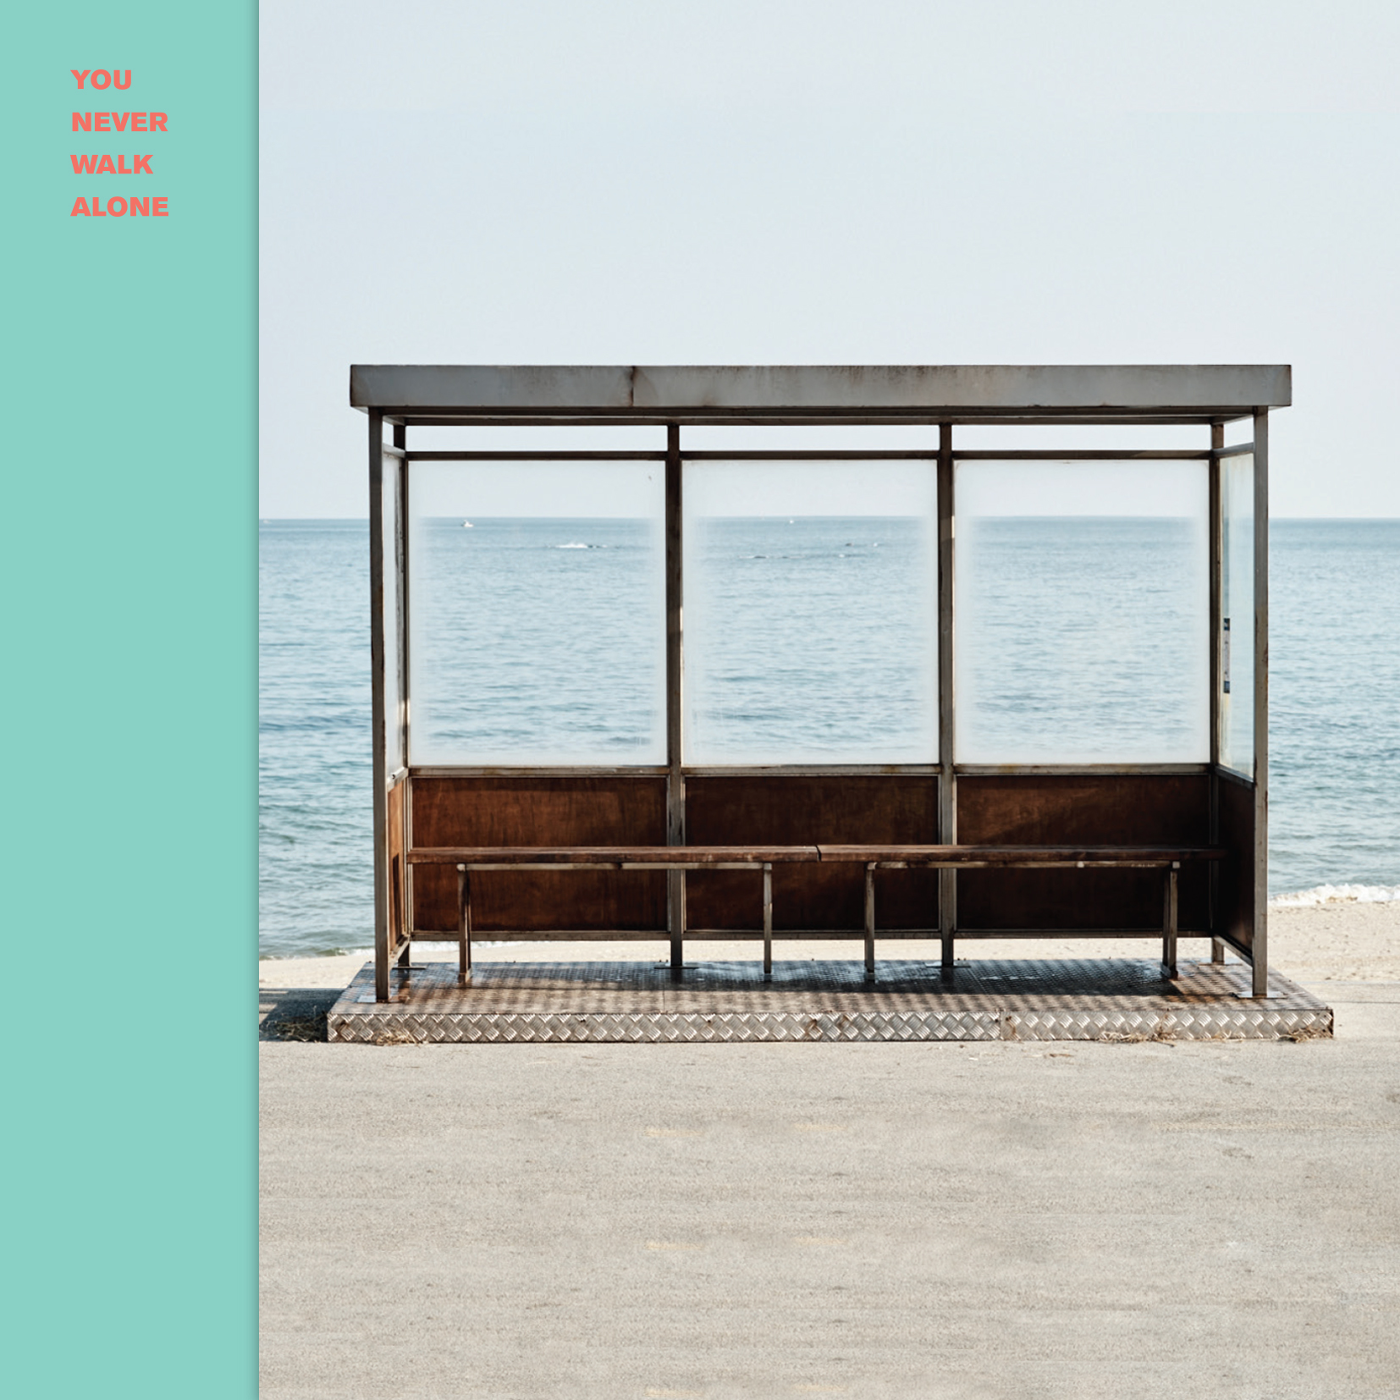 BTS You Never Walk Alone digital cover art.png